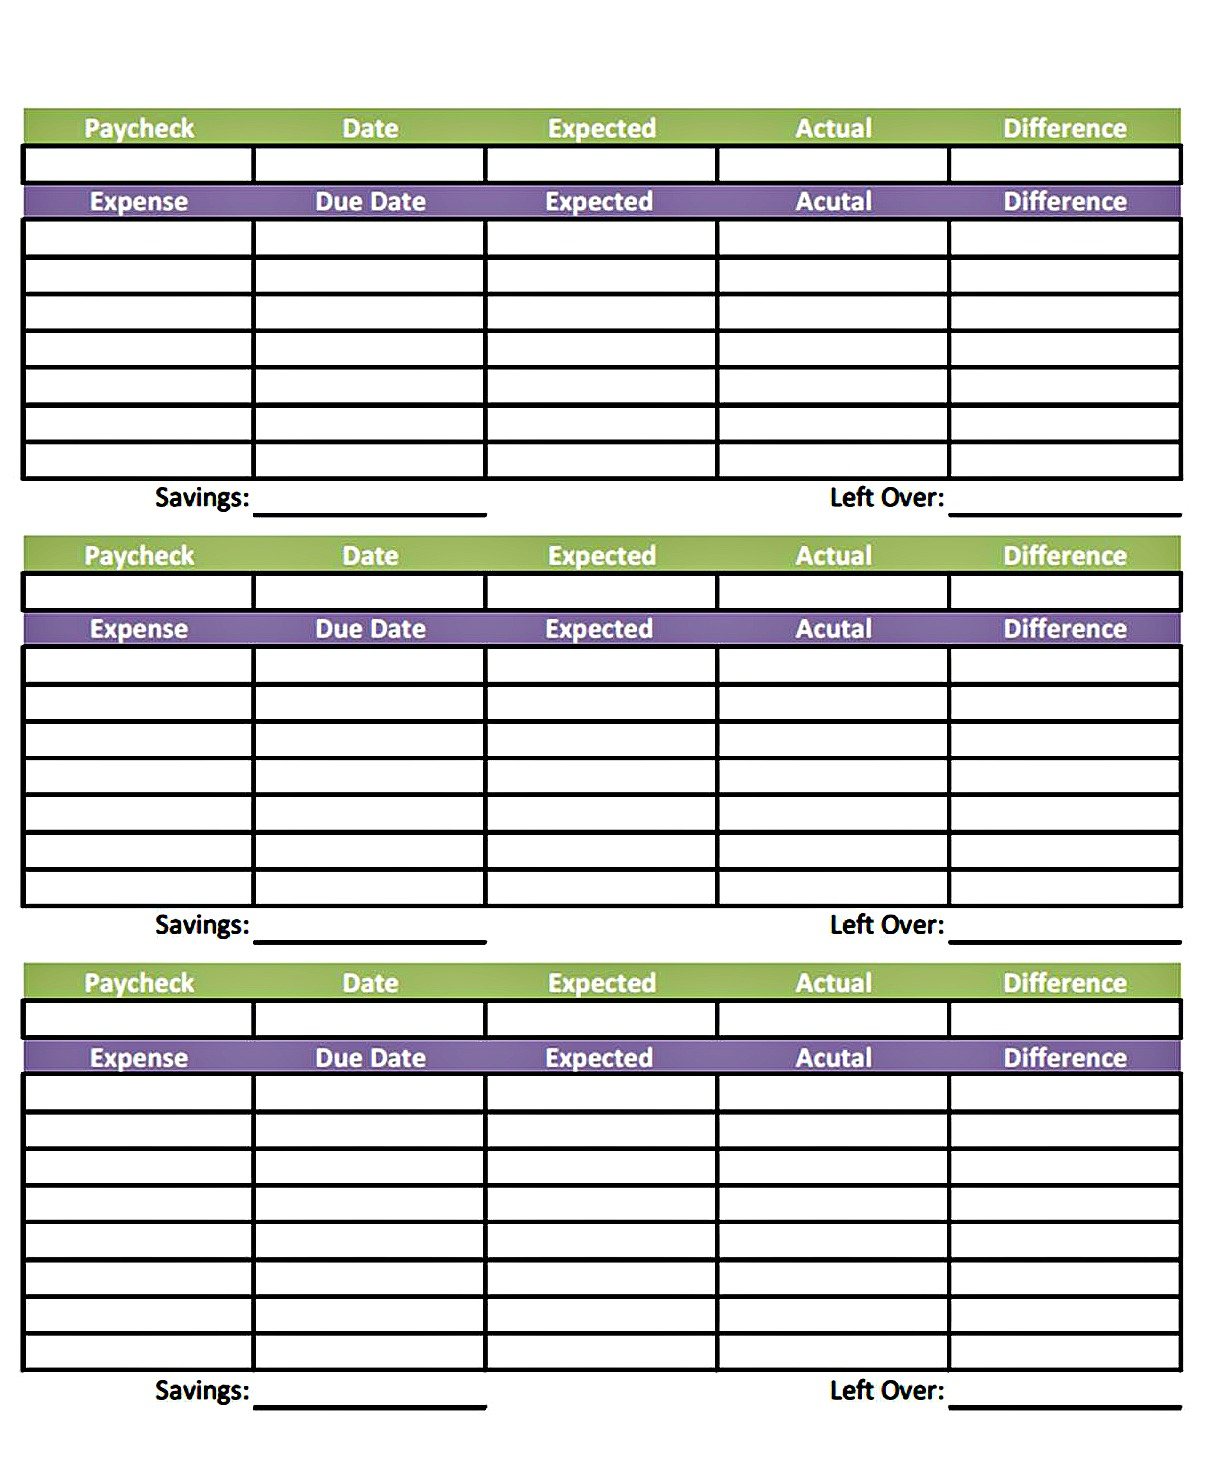 Printables Free Bi Weekly Budget Worksheet bonfires and wine livin paycheck to free printable just right click save each of the pictures or if you want file sent in an editable document so can make your